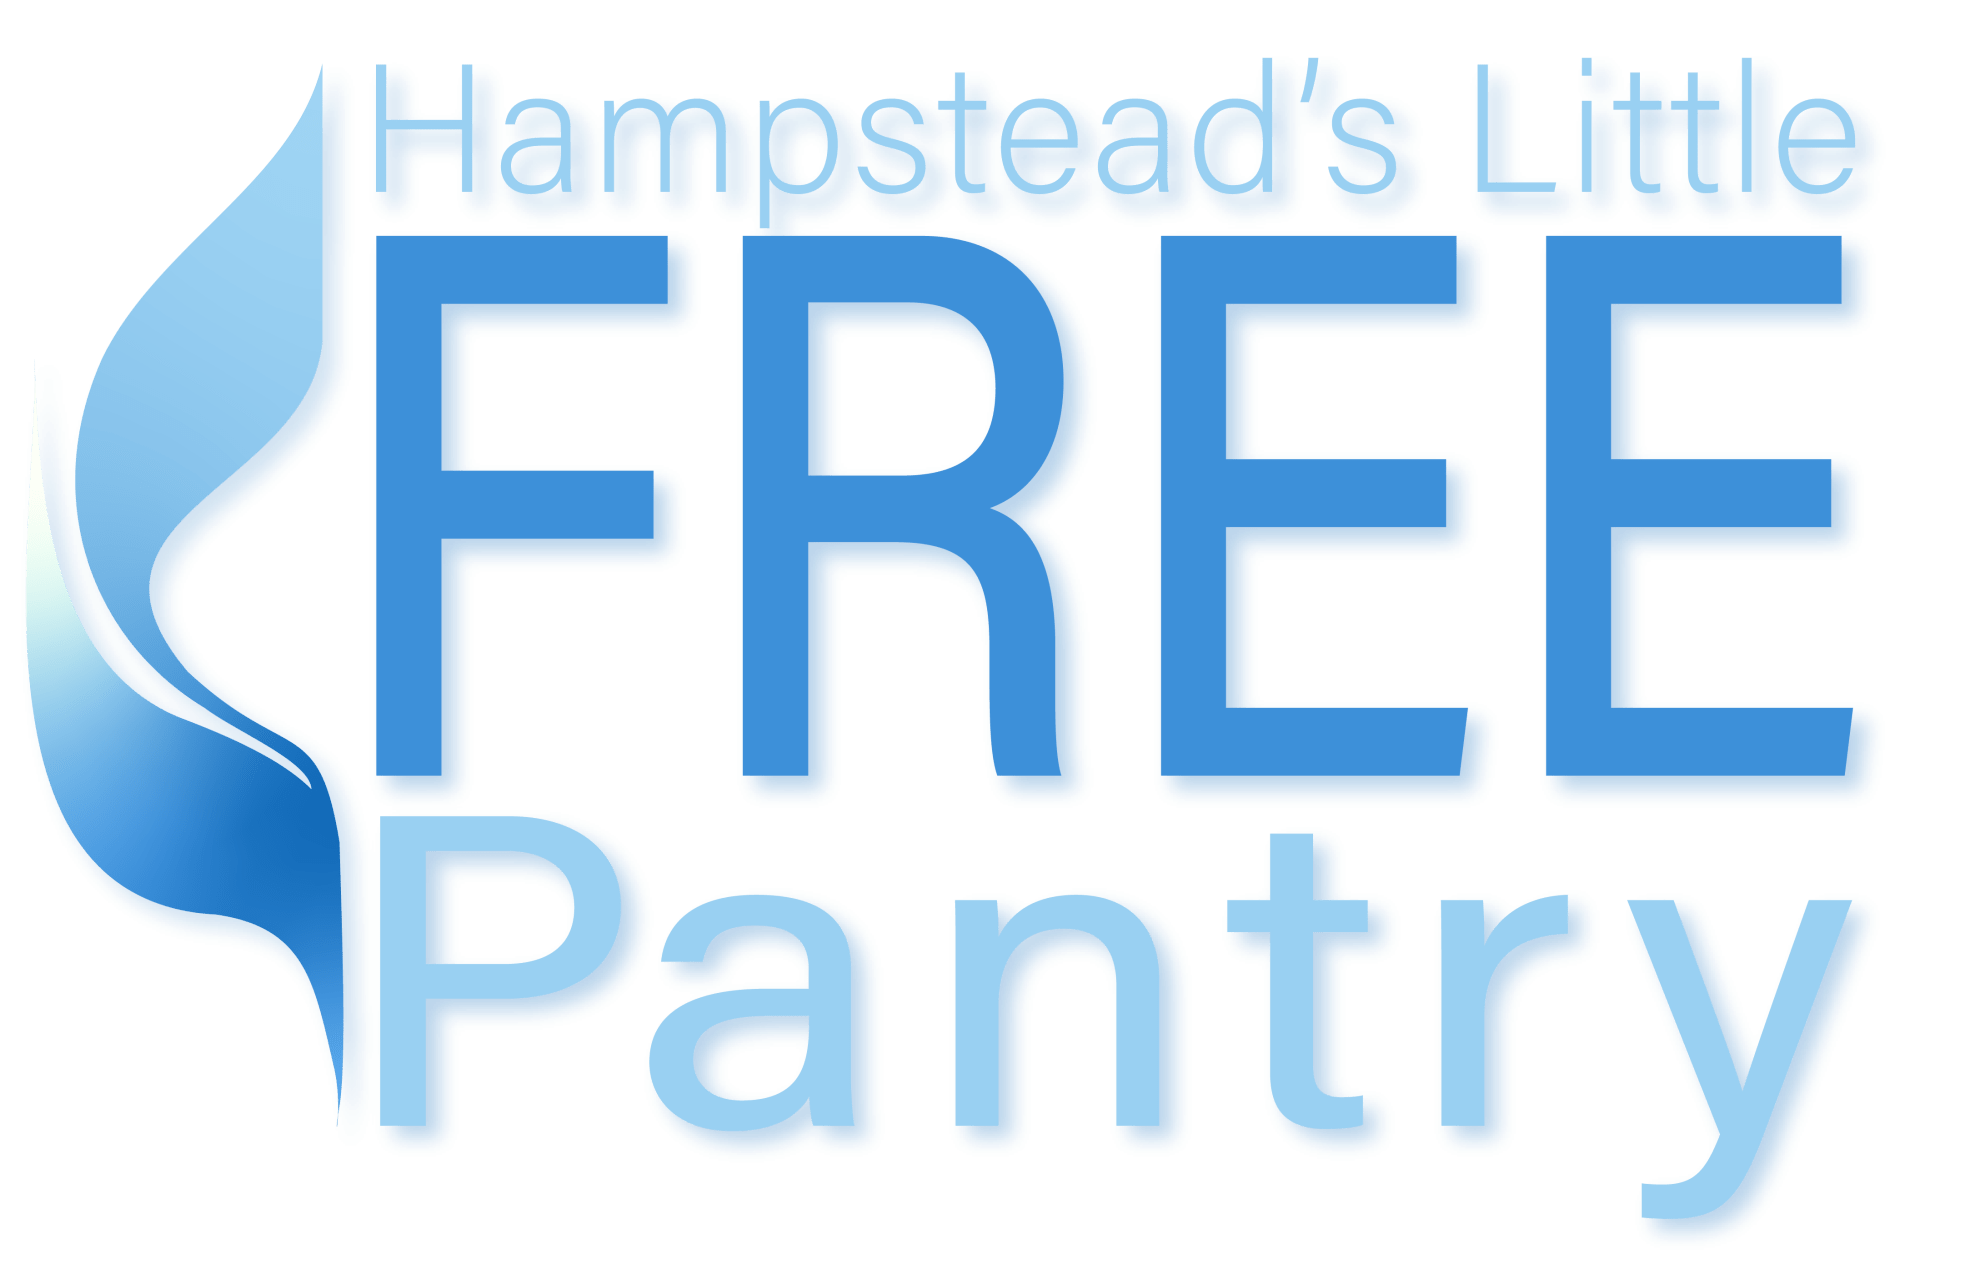 Text-based logo for Hampstead's Little Free Pantry